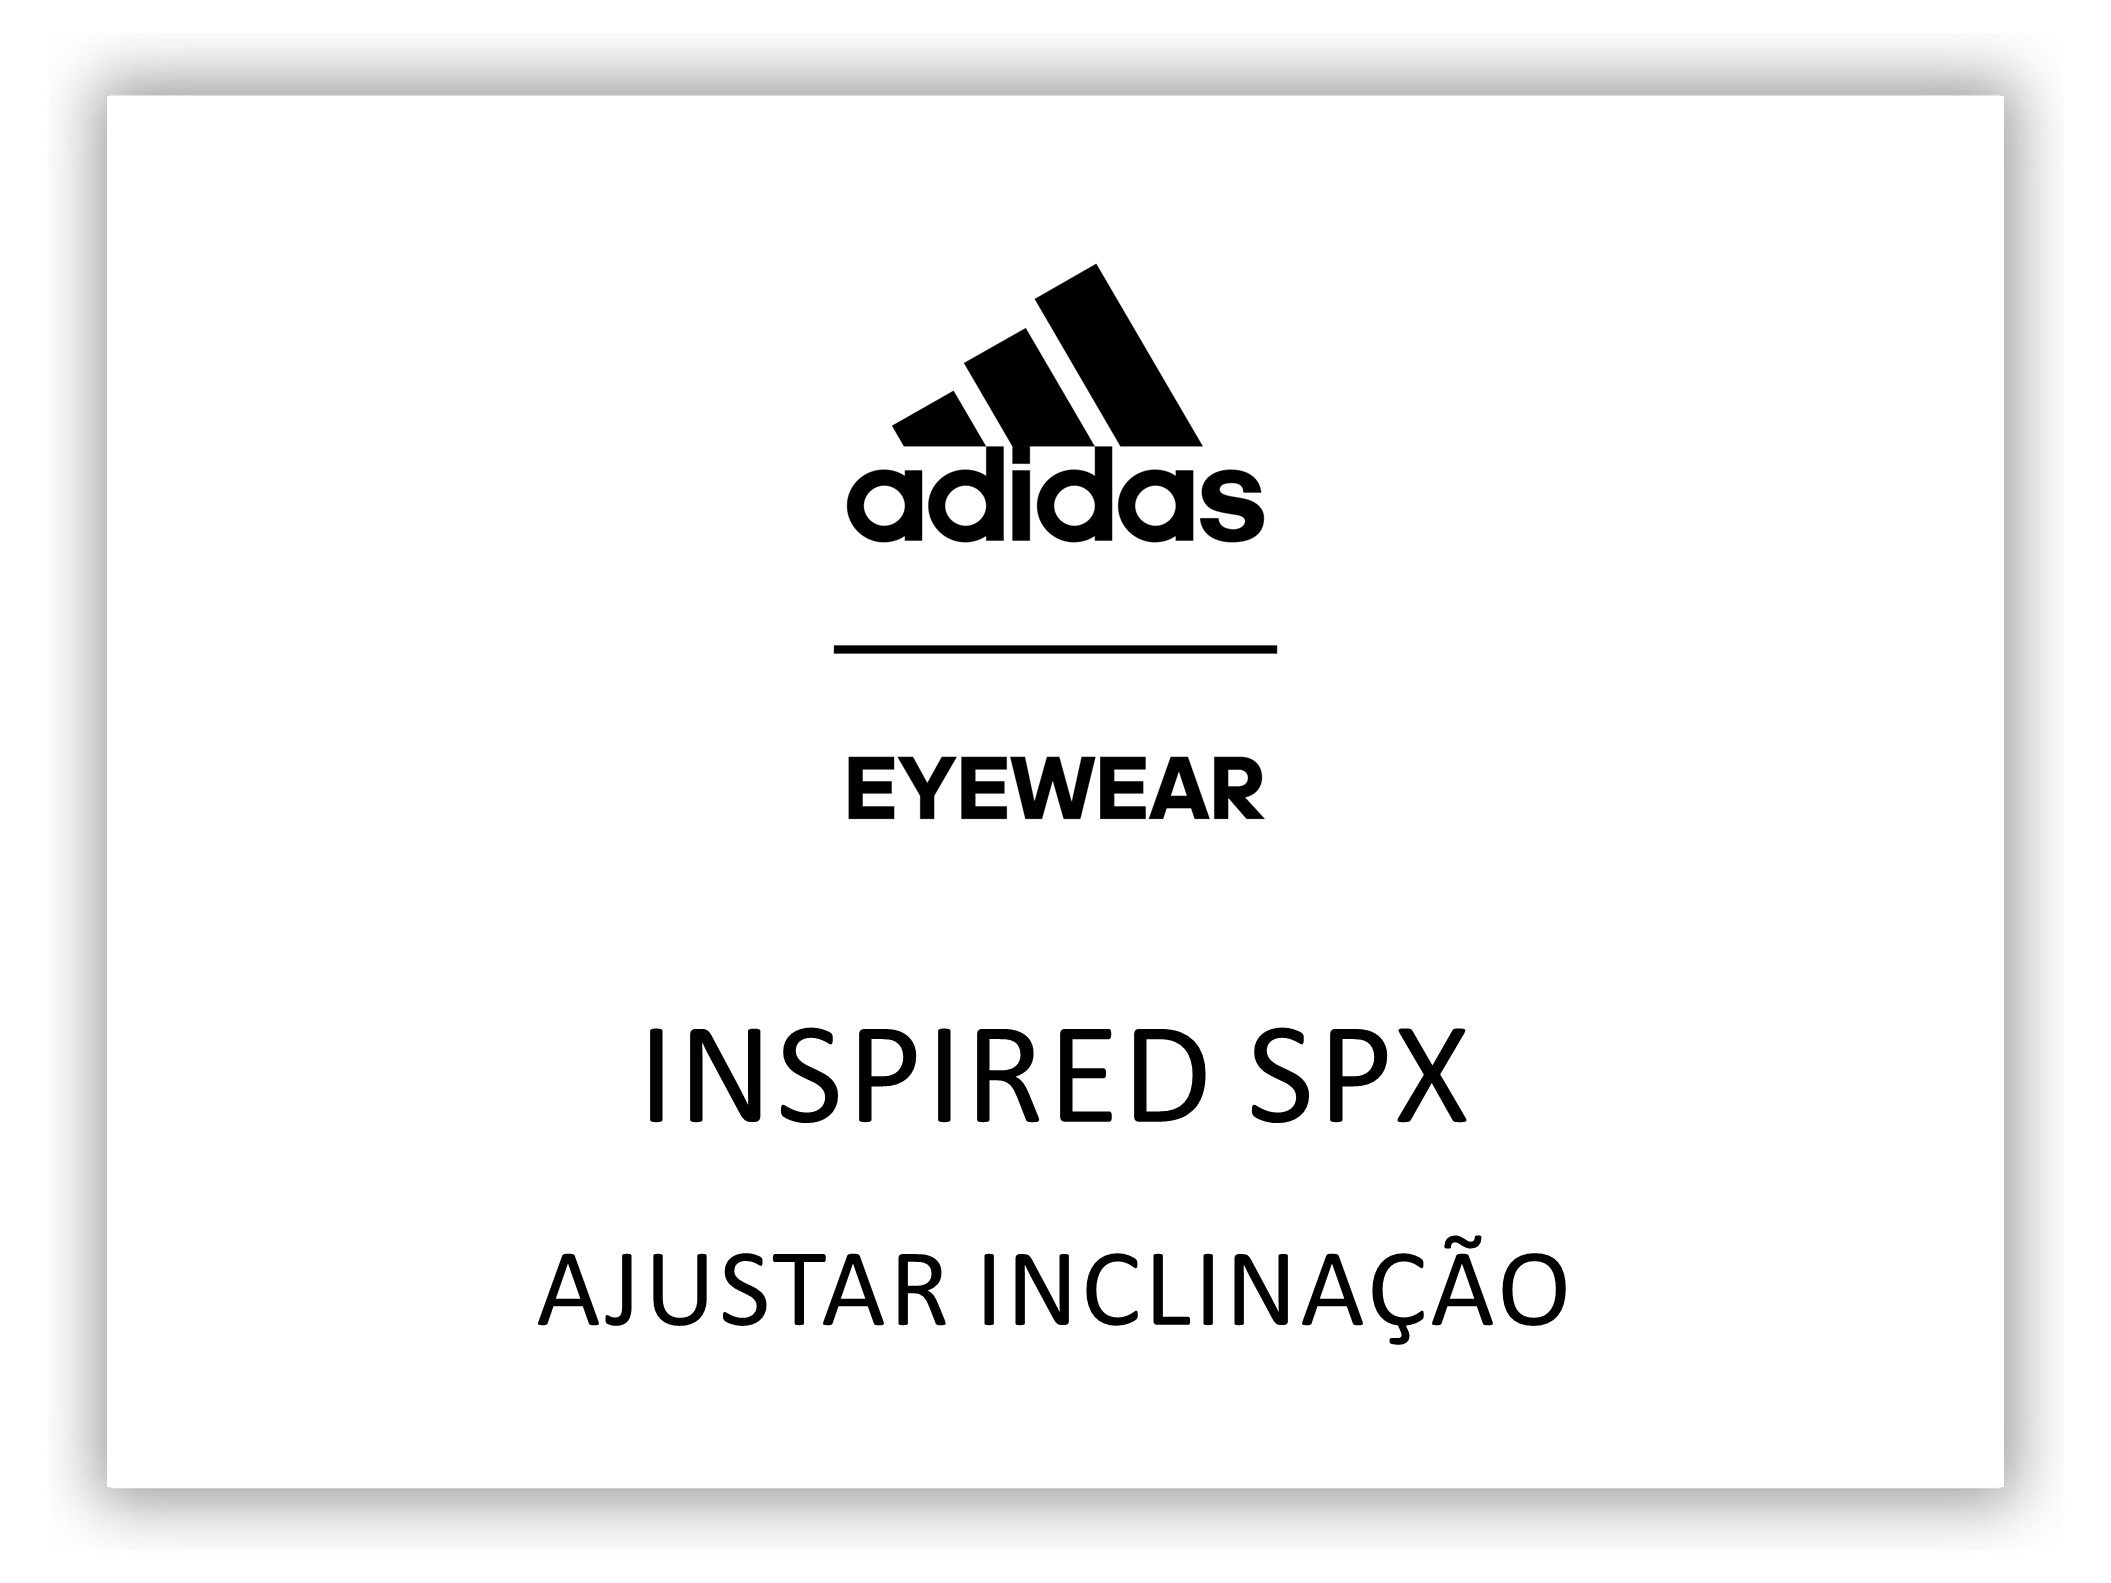 Adidas_capa-inspired SPX-INCL